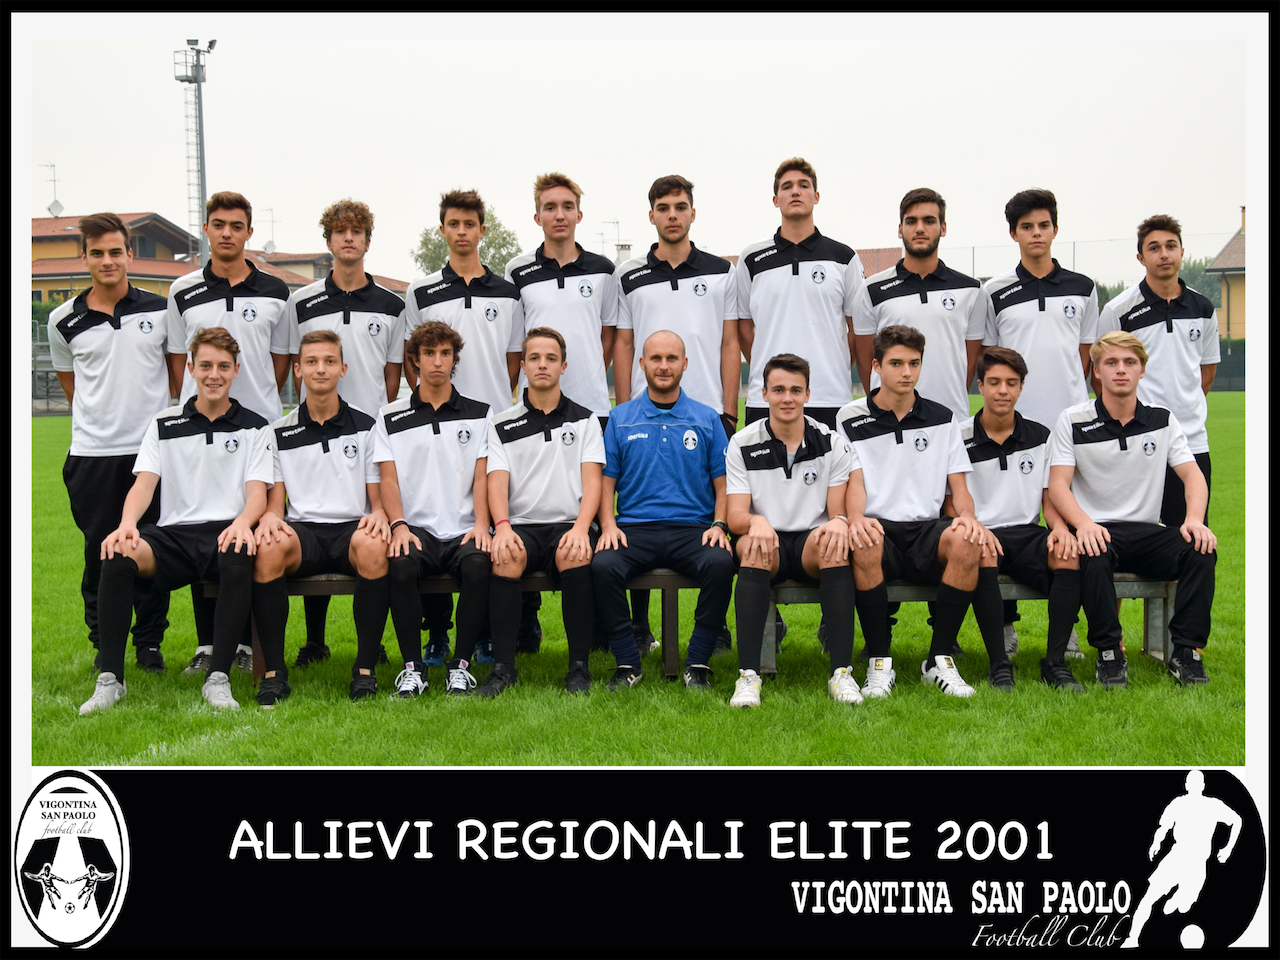 2001 Allievi Regionali Elite